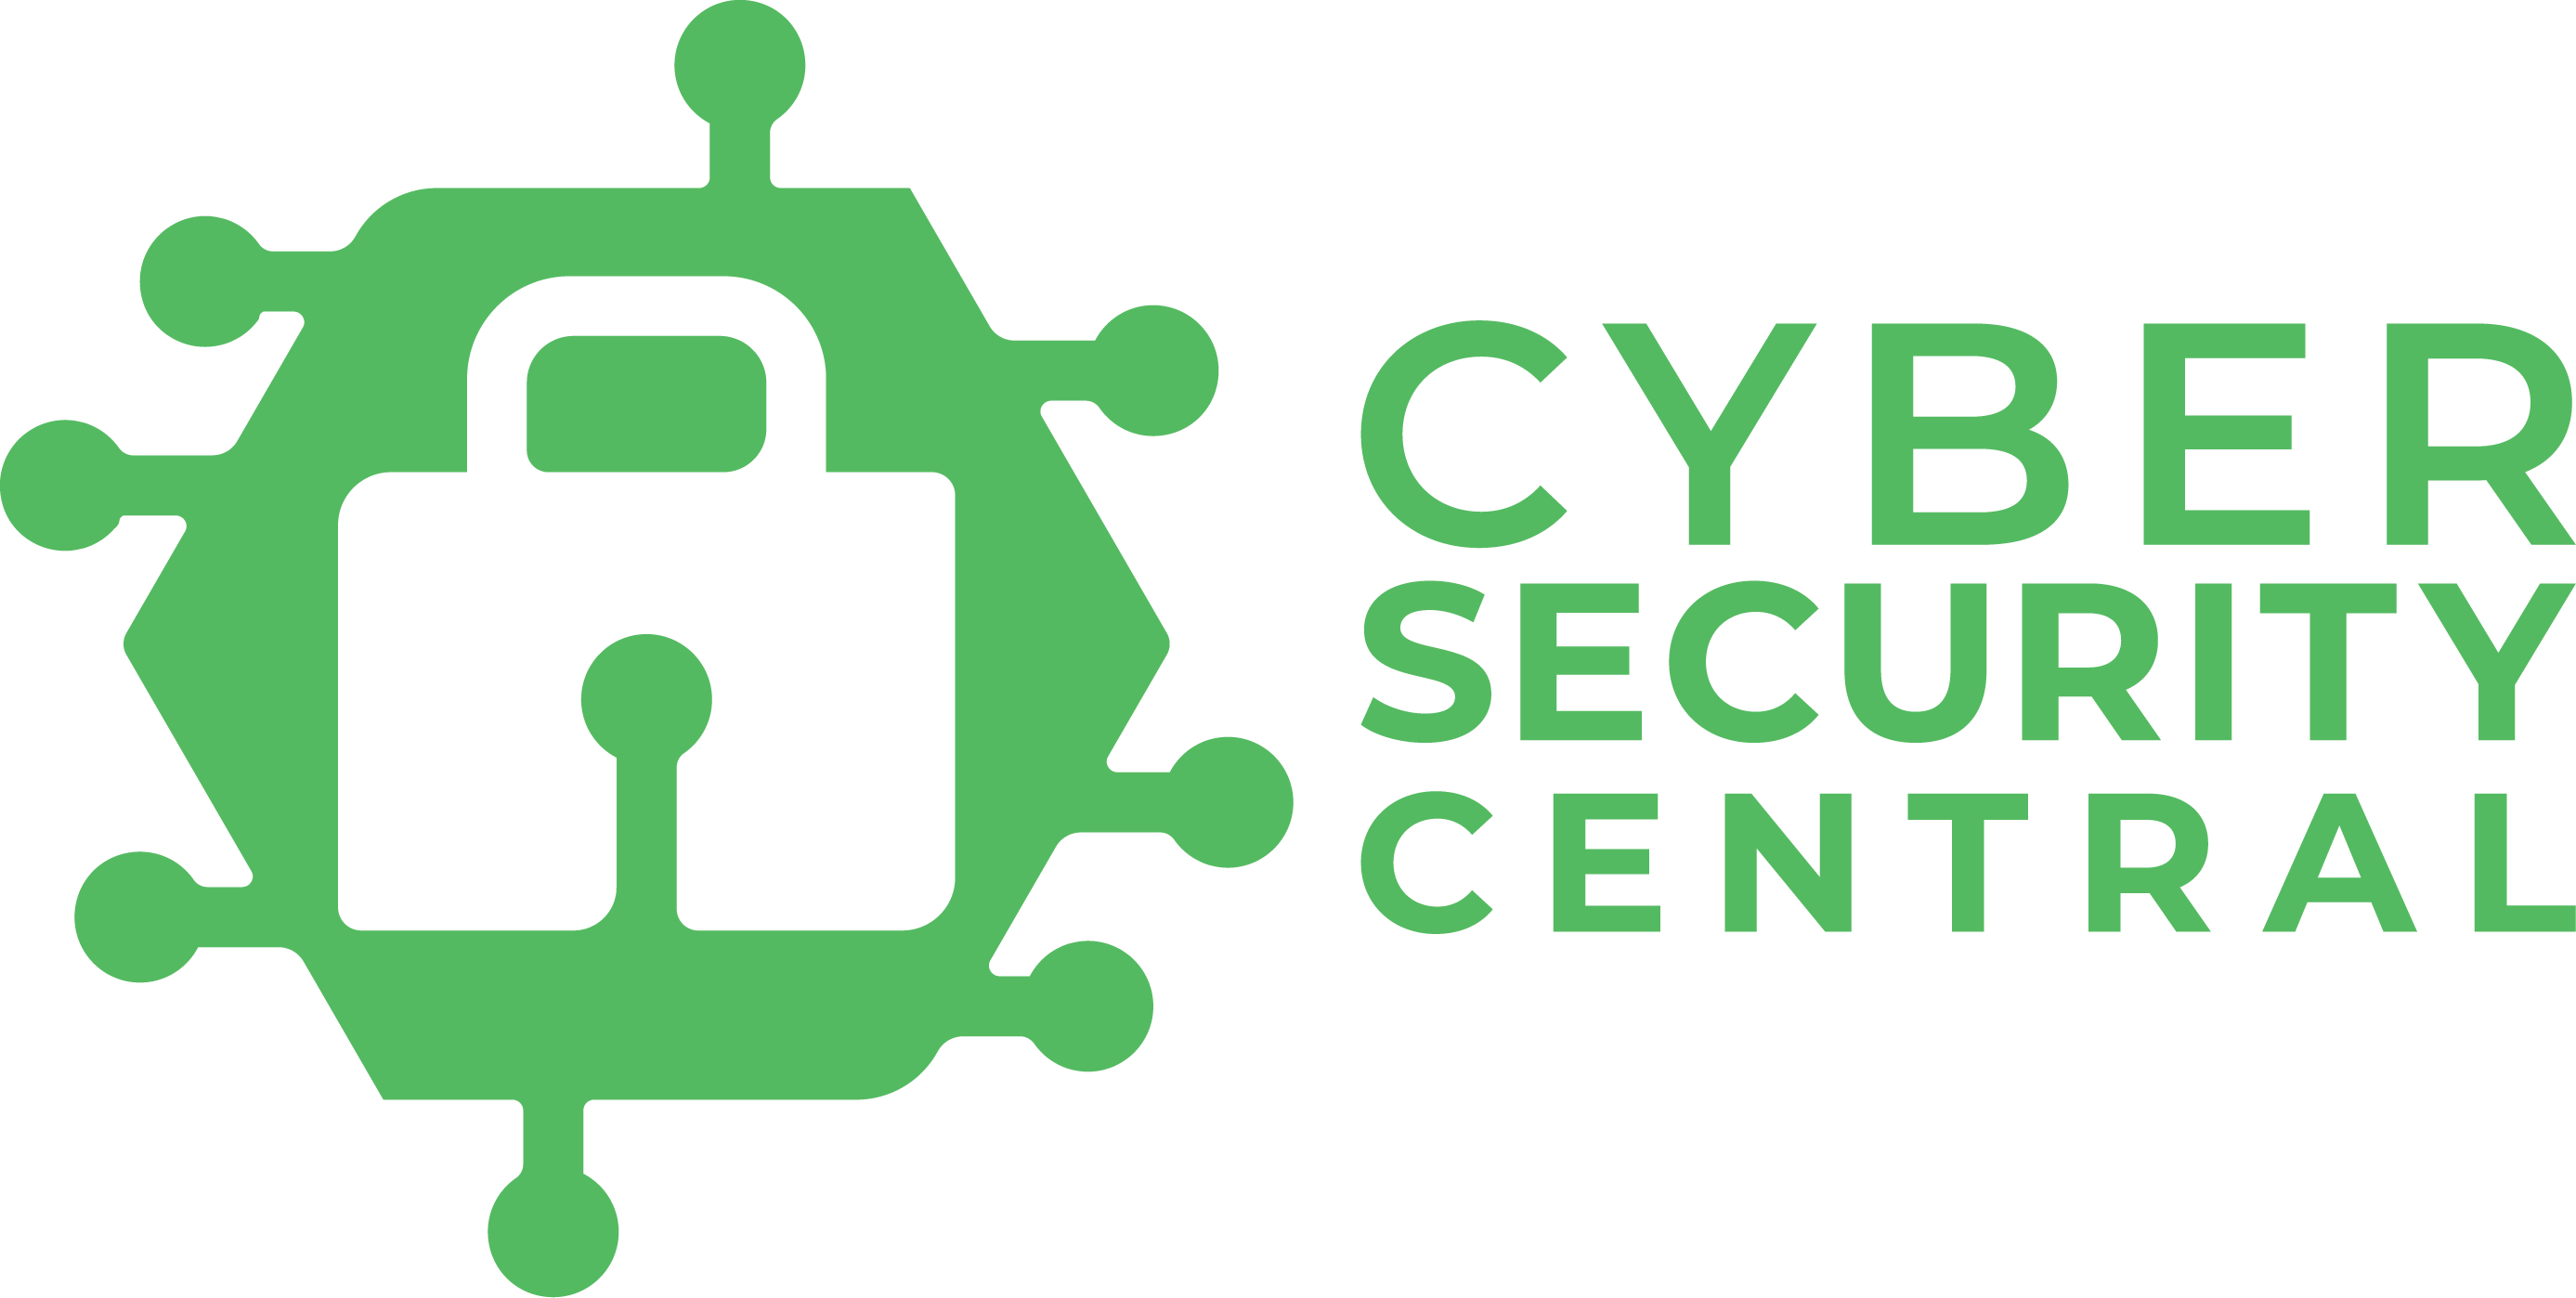 Cybersecurity Central